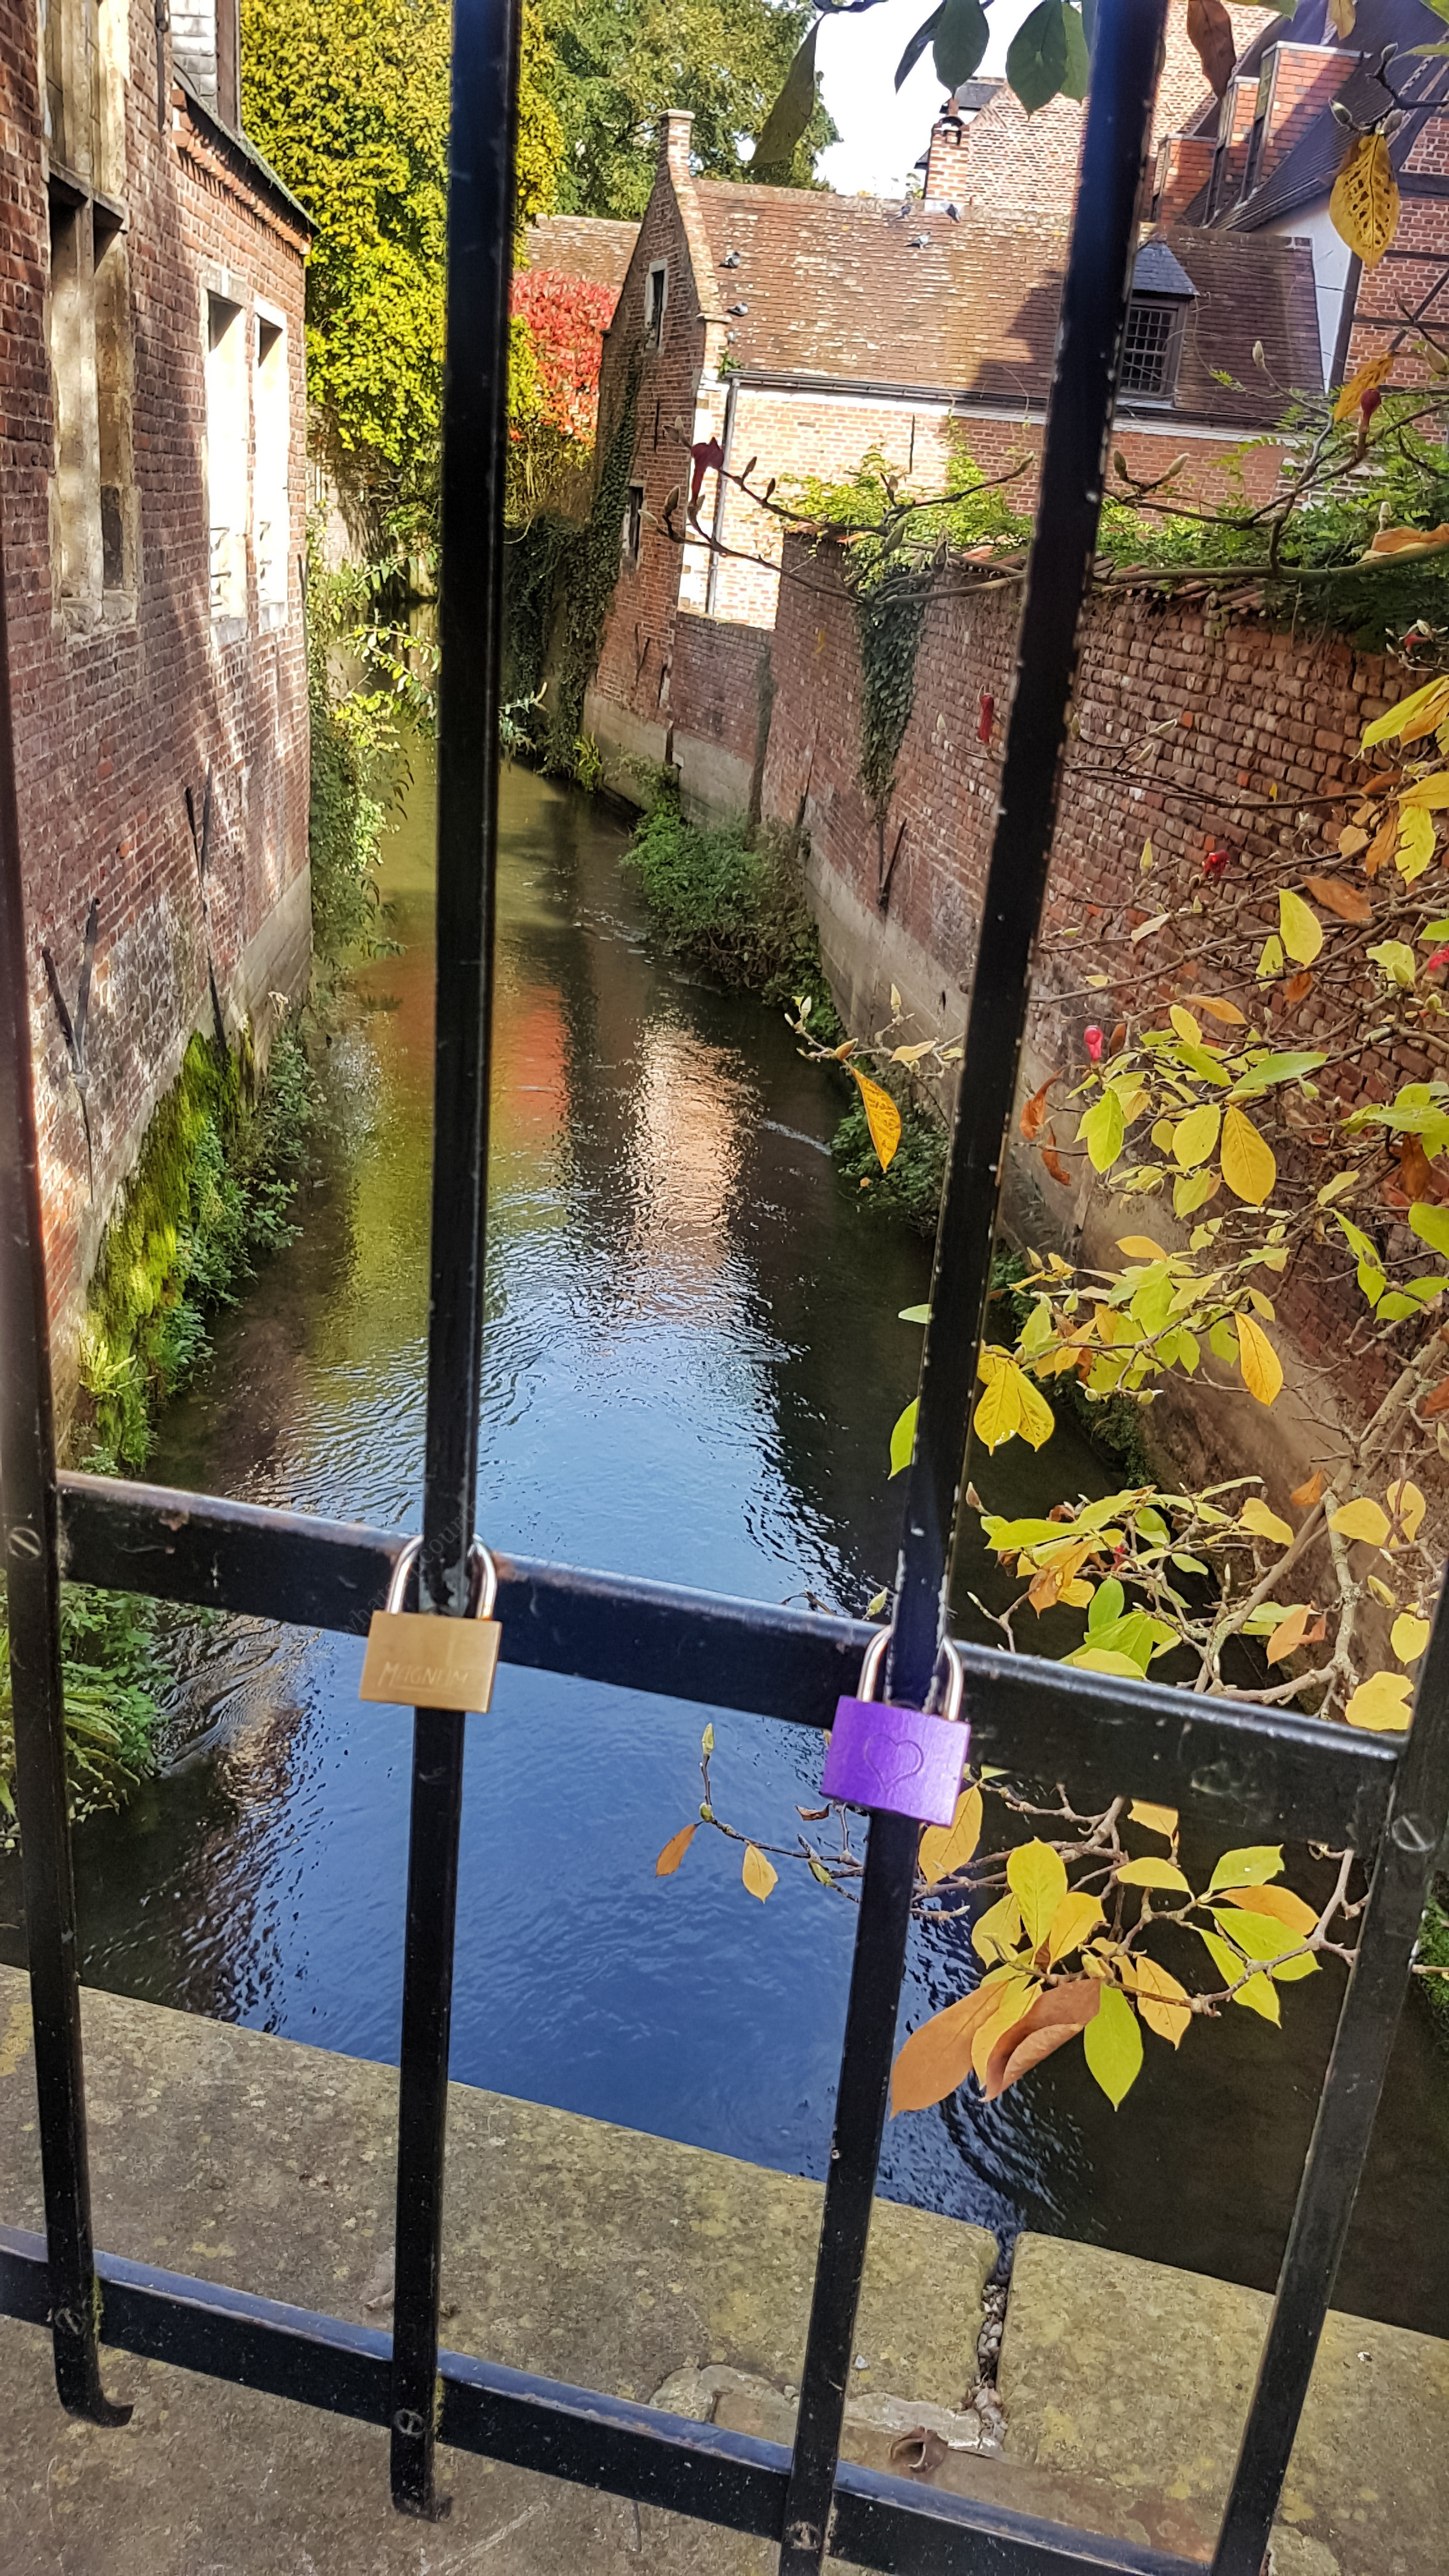 Love lock on a bridge of a small river at the Unesco heritage site, Groot Begijnhof - read more about what you can do in Leuven in 48 hours at www.whatsupcourtney.com #Leuven #travel #travelguide